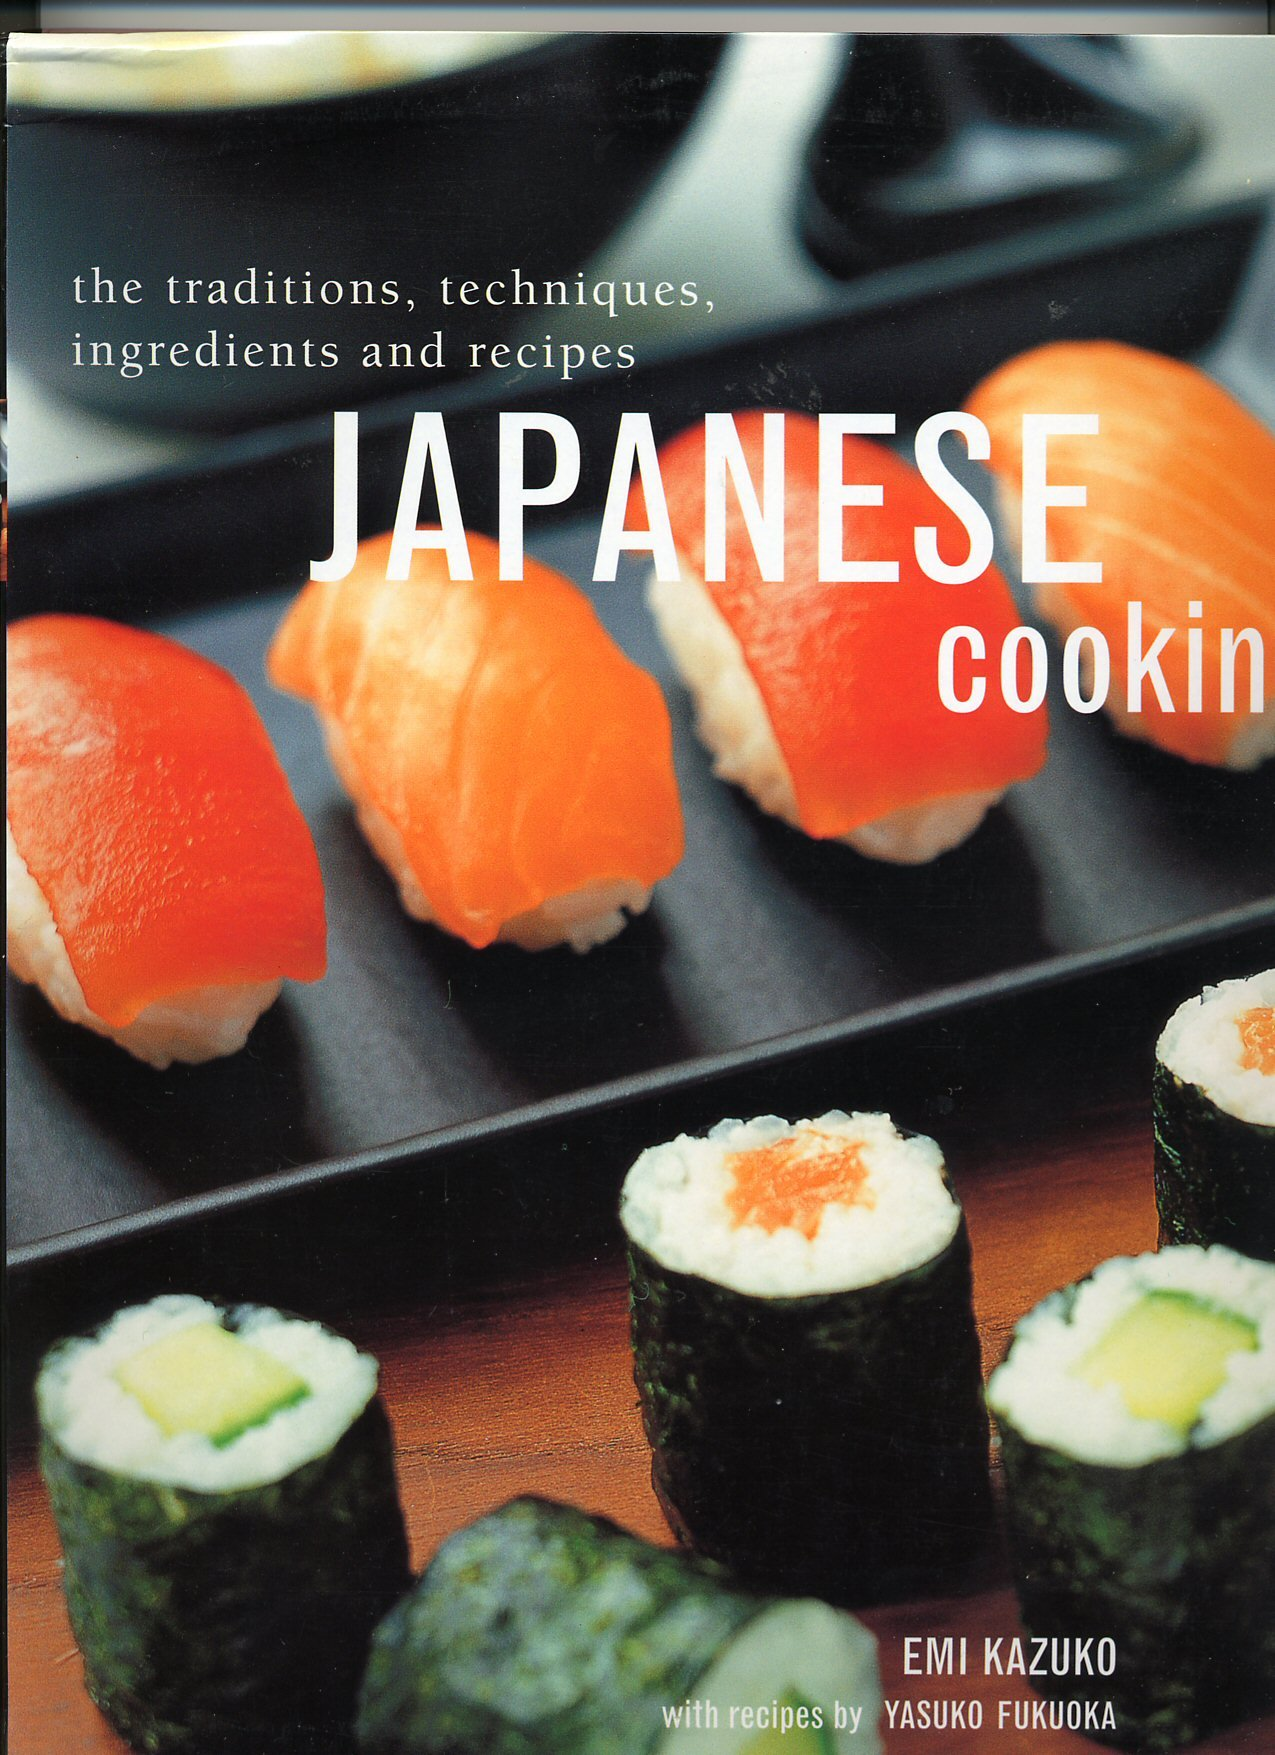 Japanese cooking the traditions techniques ingredients and japanese cooking the traditions techniques ingredients and recipes emi kazuko 9781843094302 amazon books forumfinder Image collections